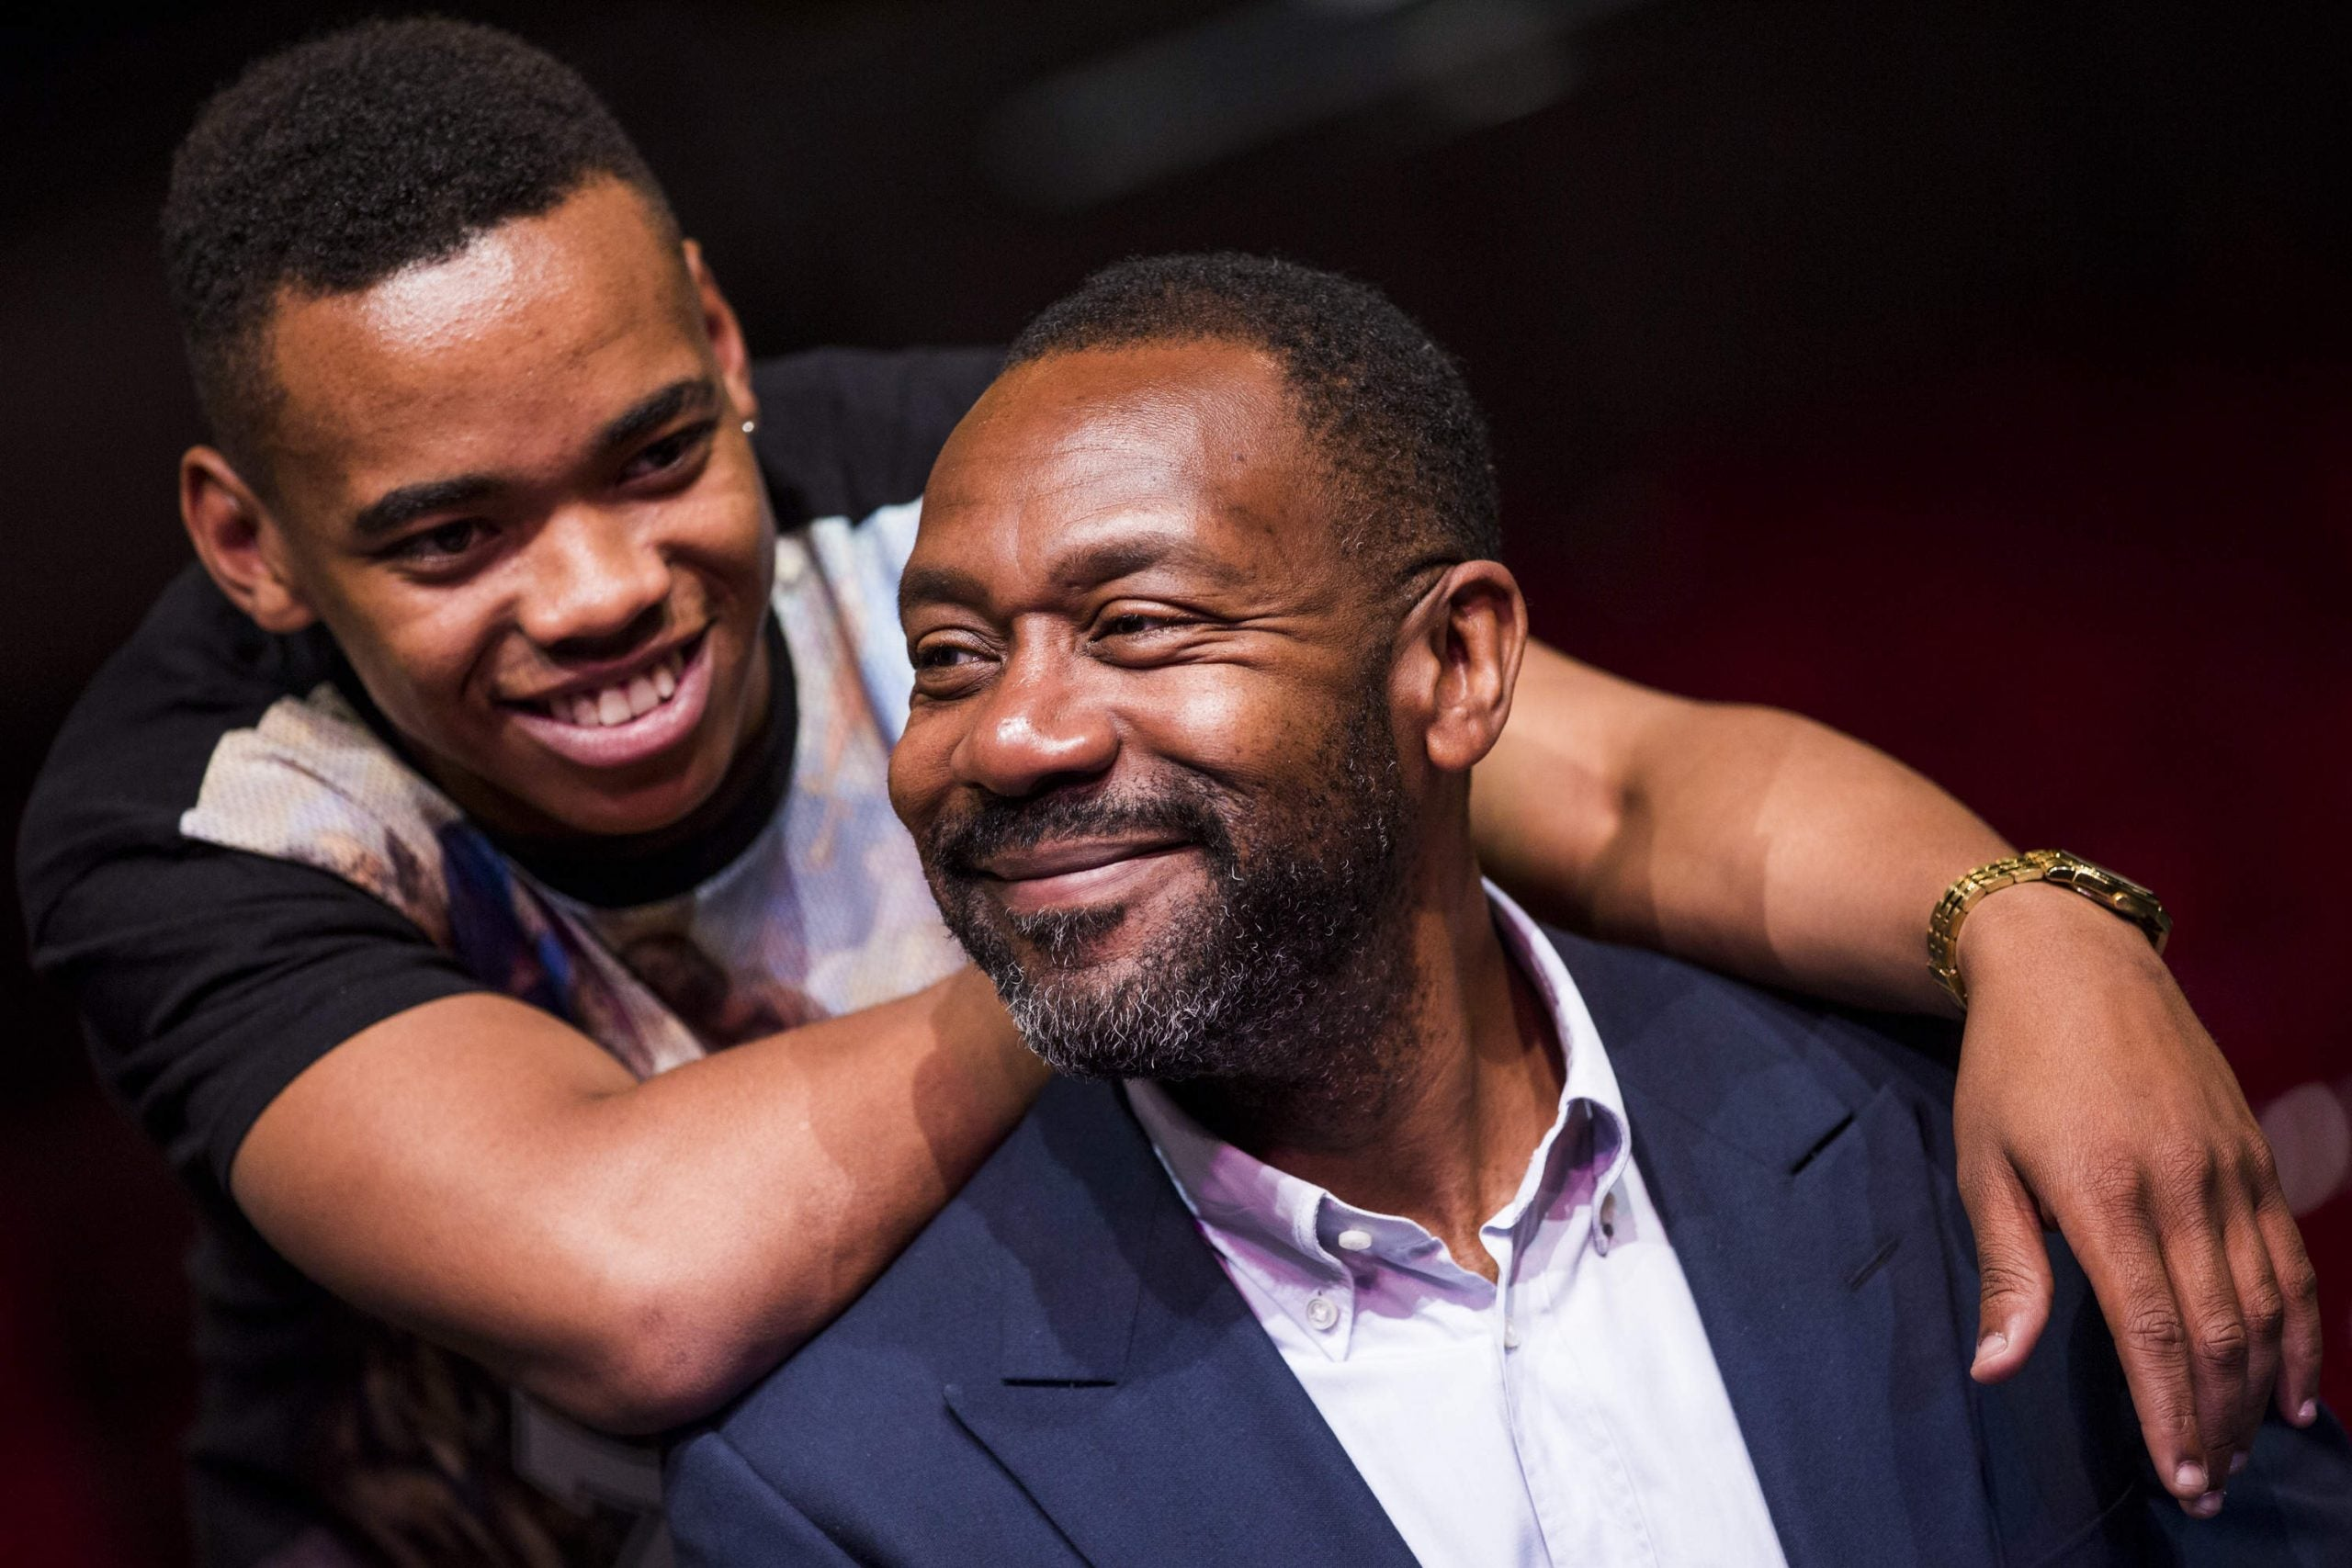 Lenny Henry: There is only one certain way to smash the black glass ceiling in television